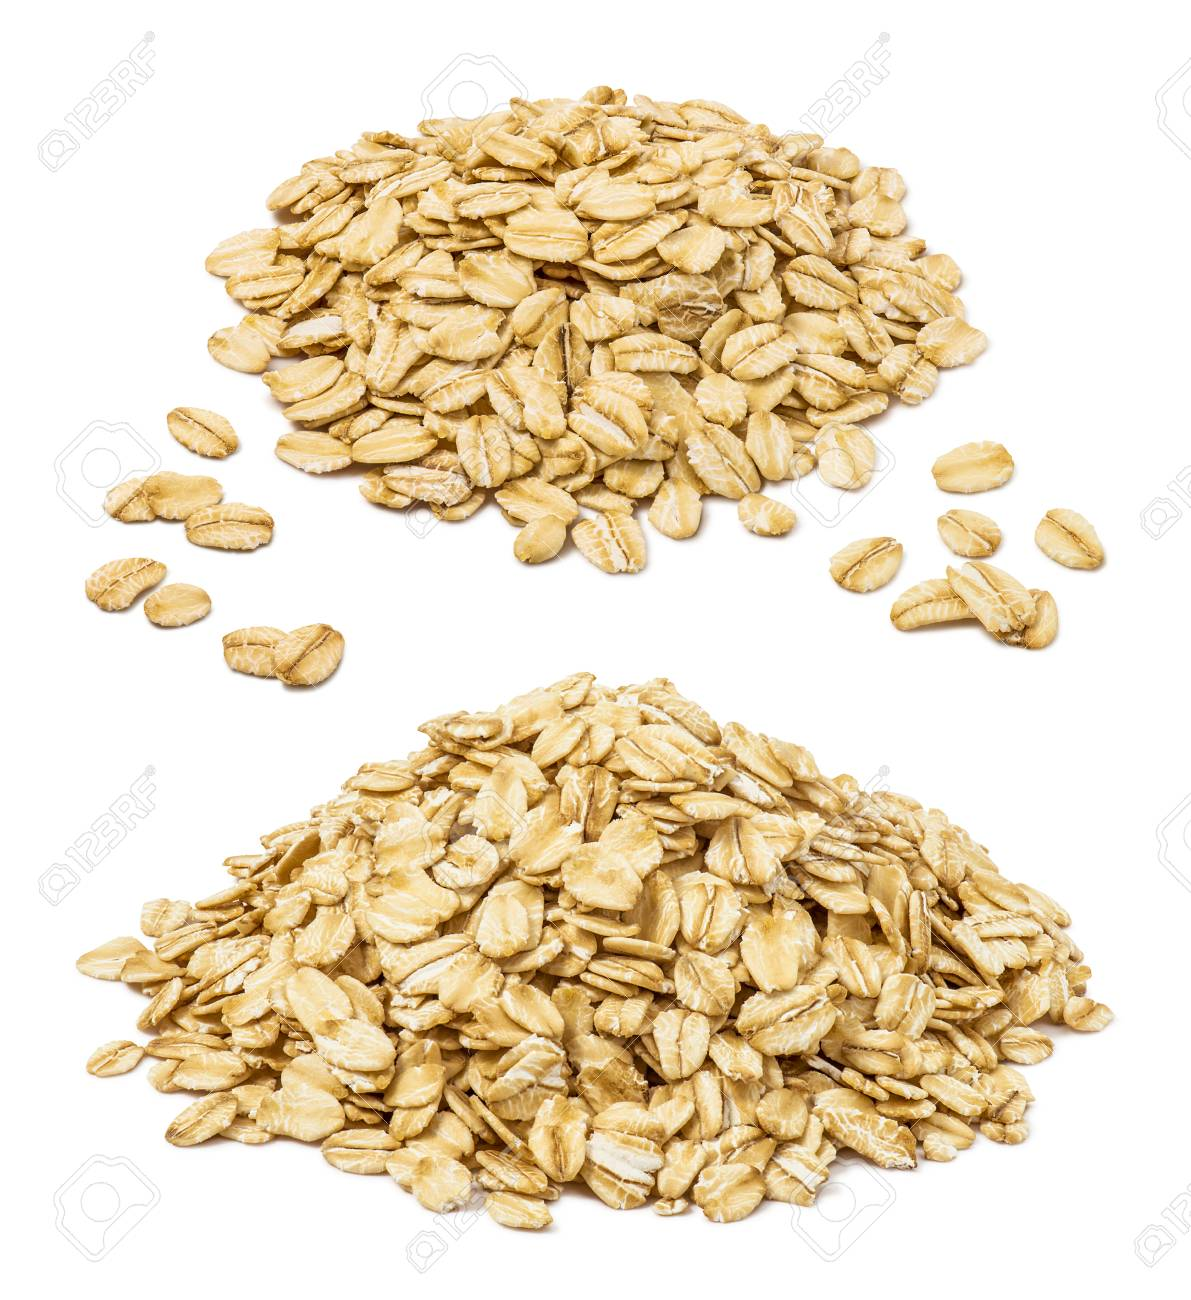 Rooled oat flakes pile set isolated on white background. Oatmeal elements for package design - 99633866